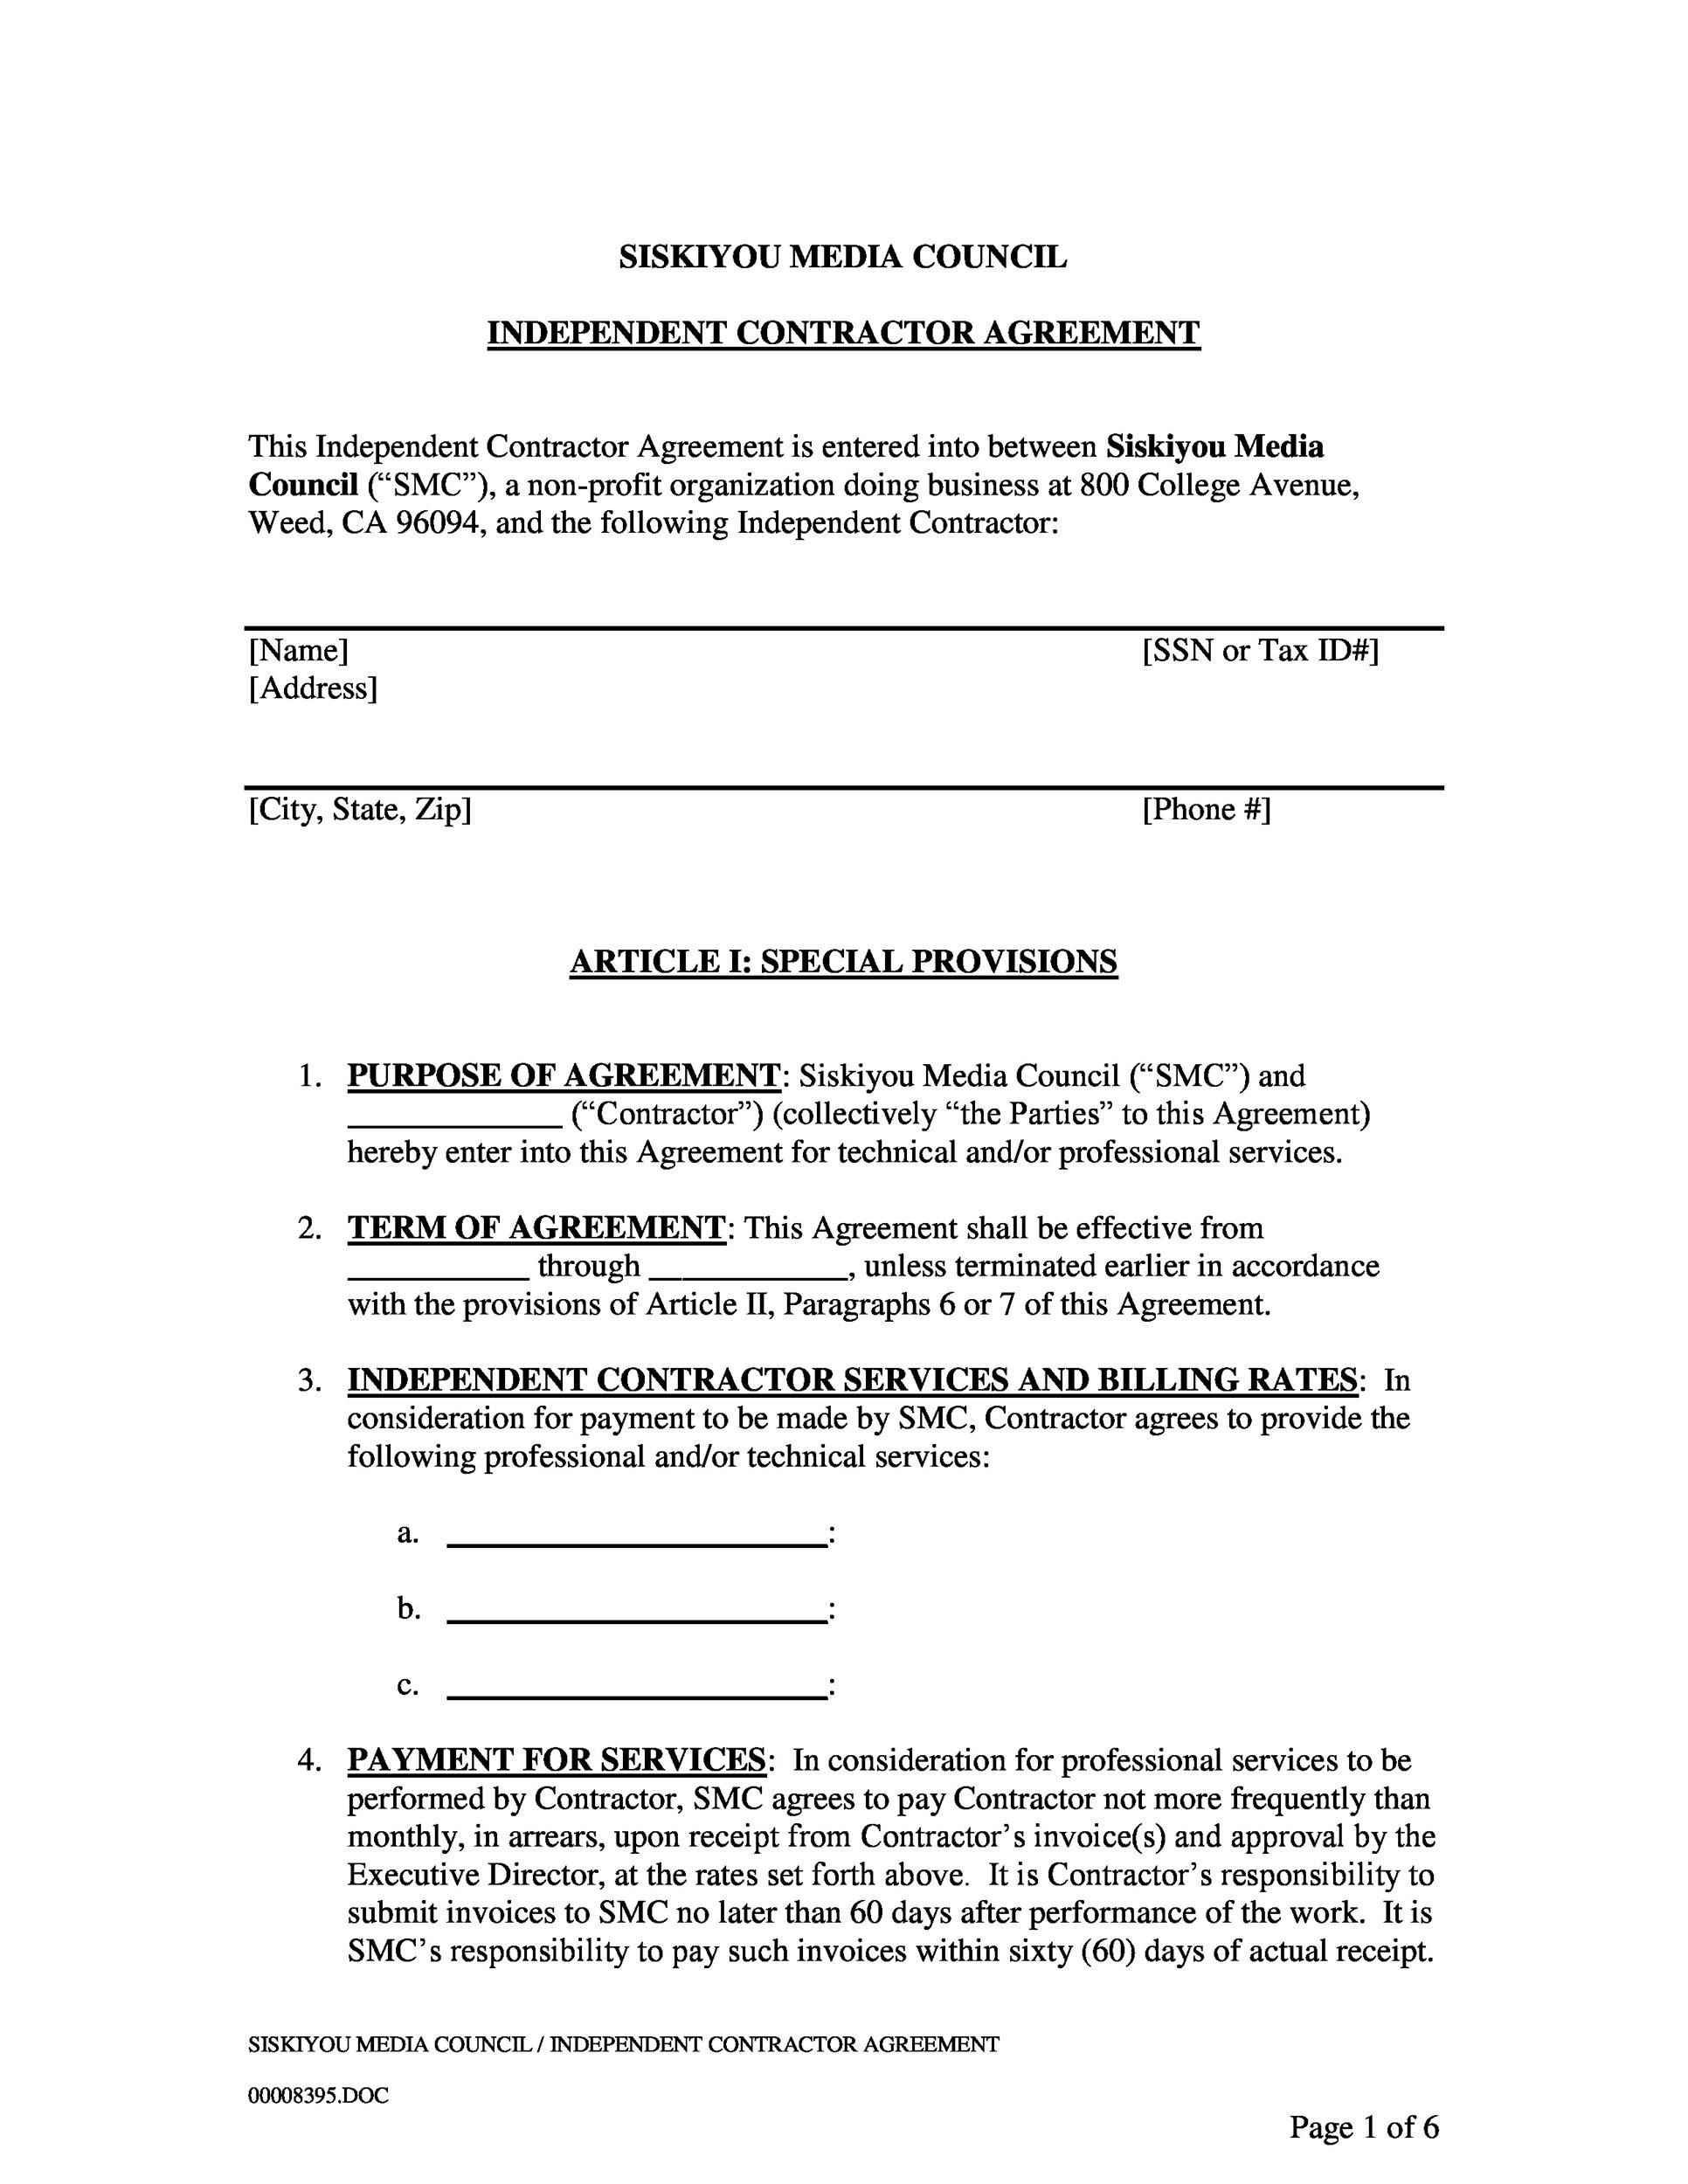 006 Amazing Simple Independent Contractor Agreement Template Highest Clarity  Basic South Africa OntarioFull